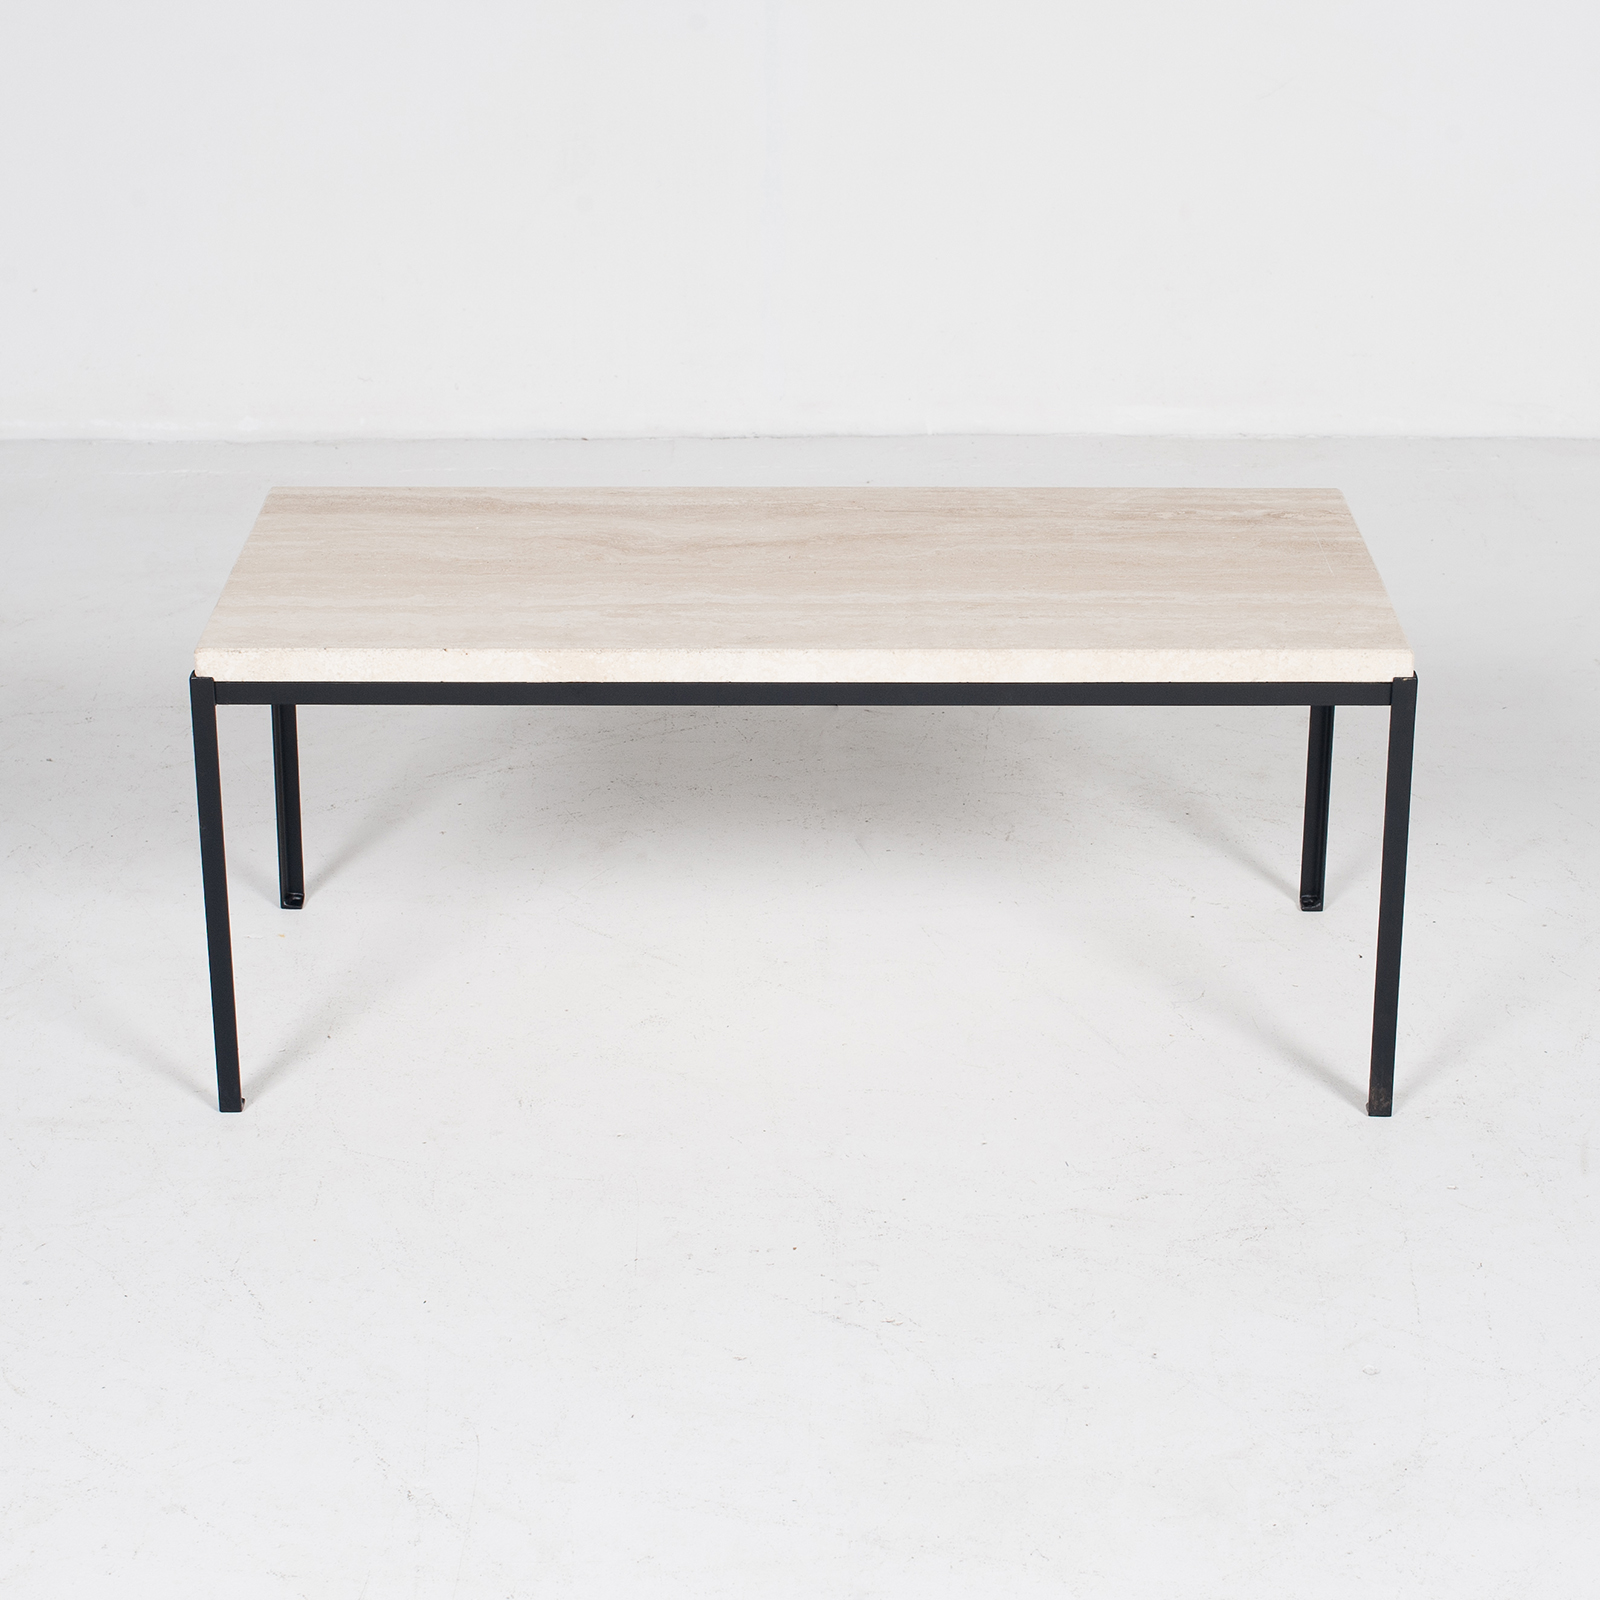 Coffee Table By Artemide With Travertine Top, 1970s, The Netherlands4